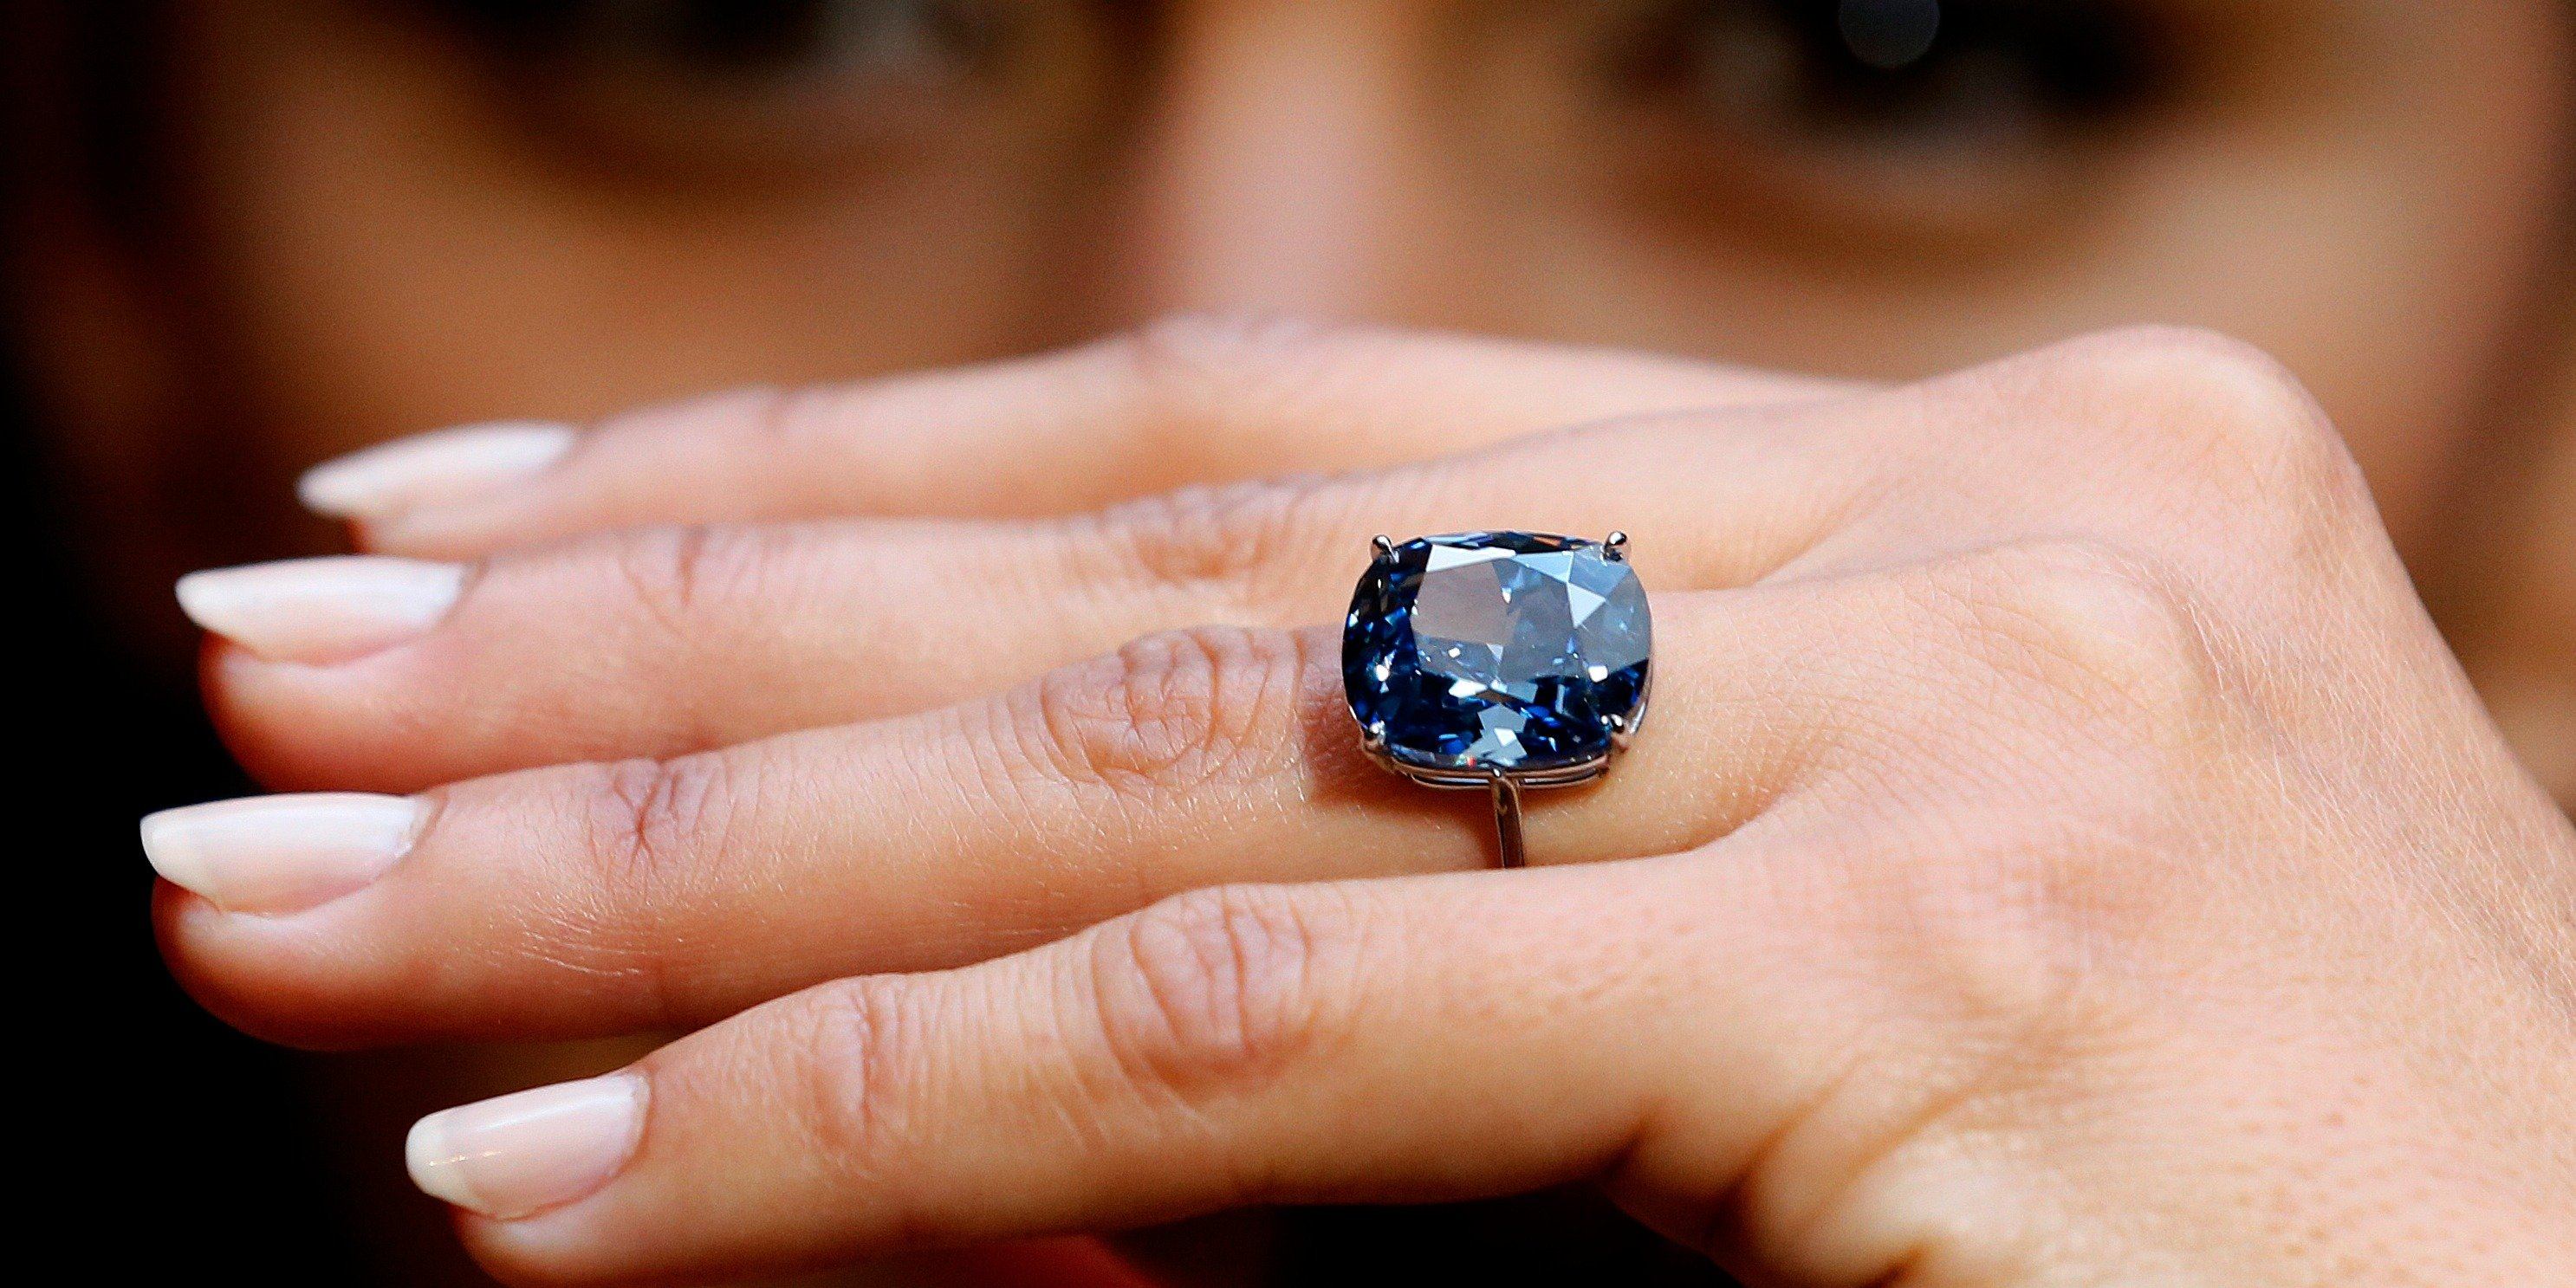 Record Price Paid For Gemstone At Auction 48 4 Million For The Blue Moon Diamond Your Diamond Guru